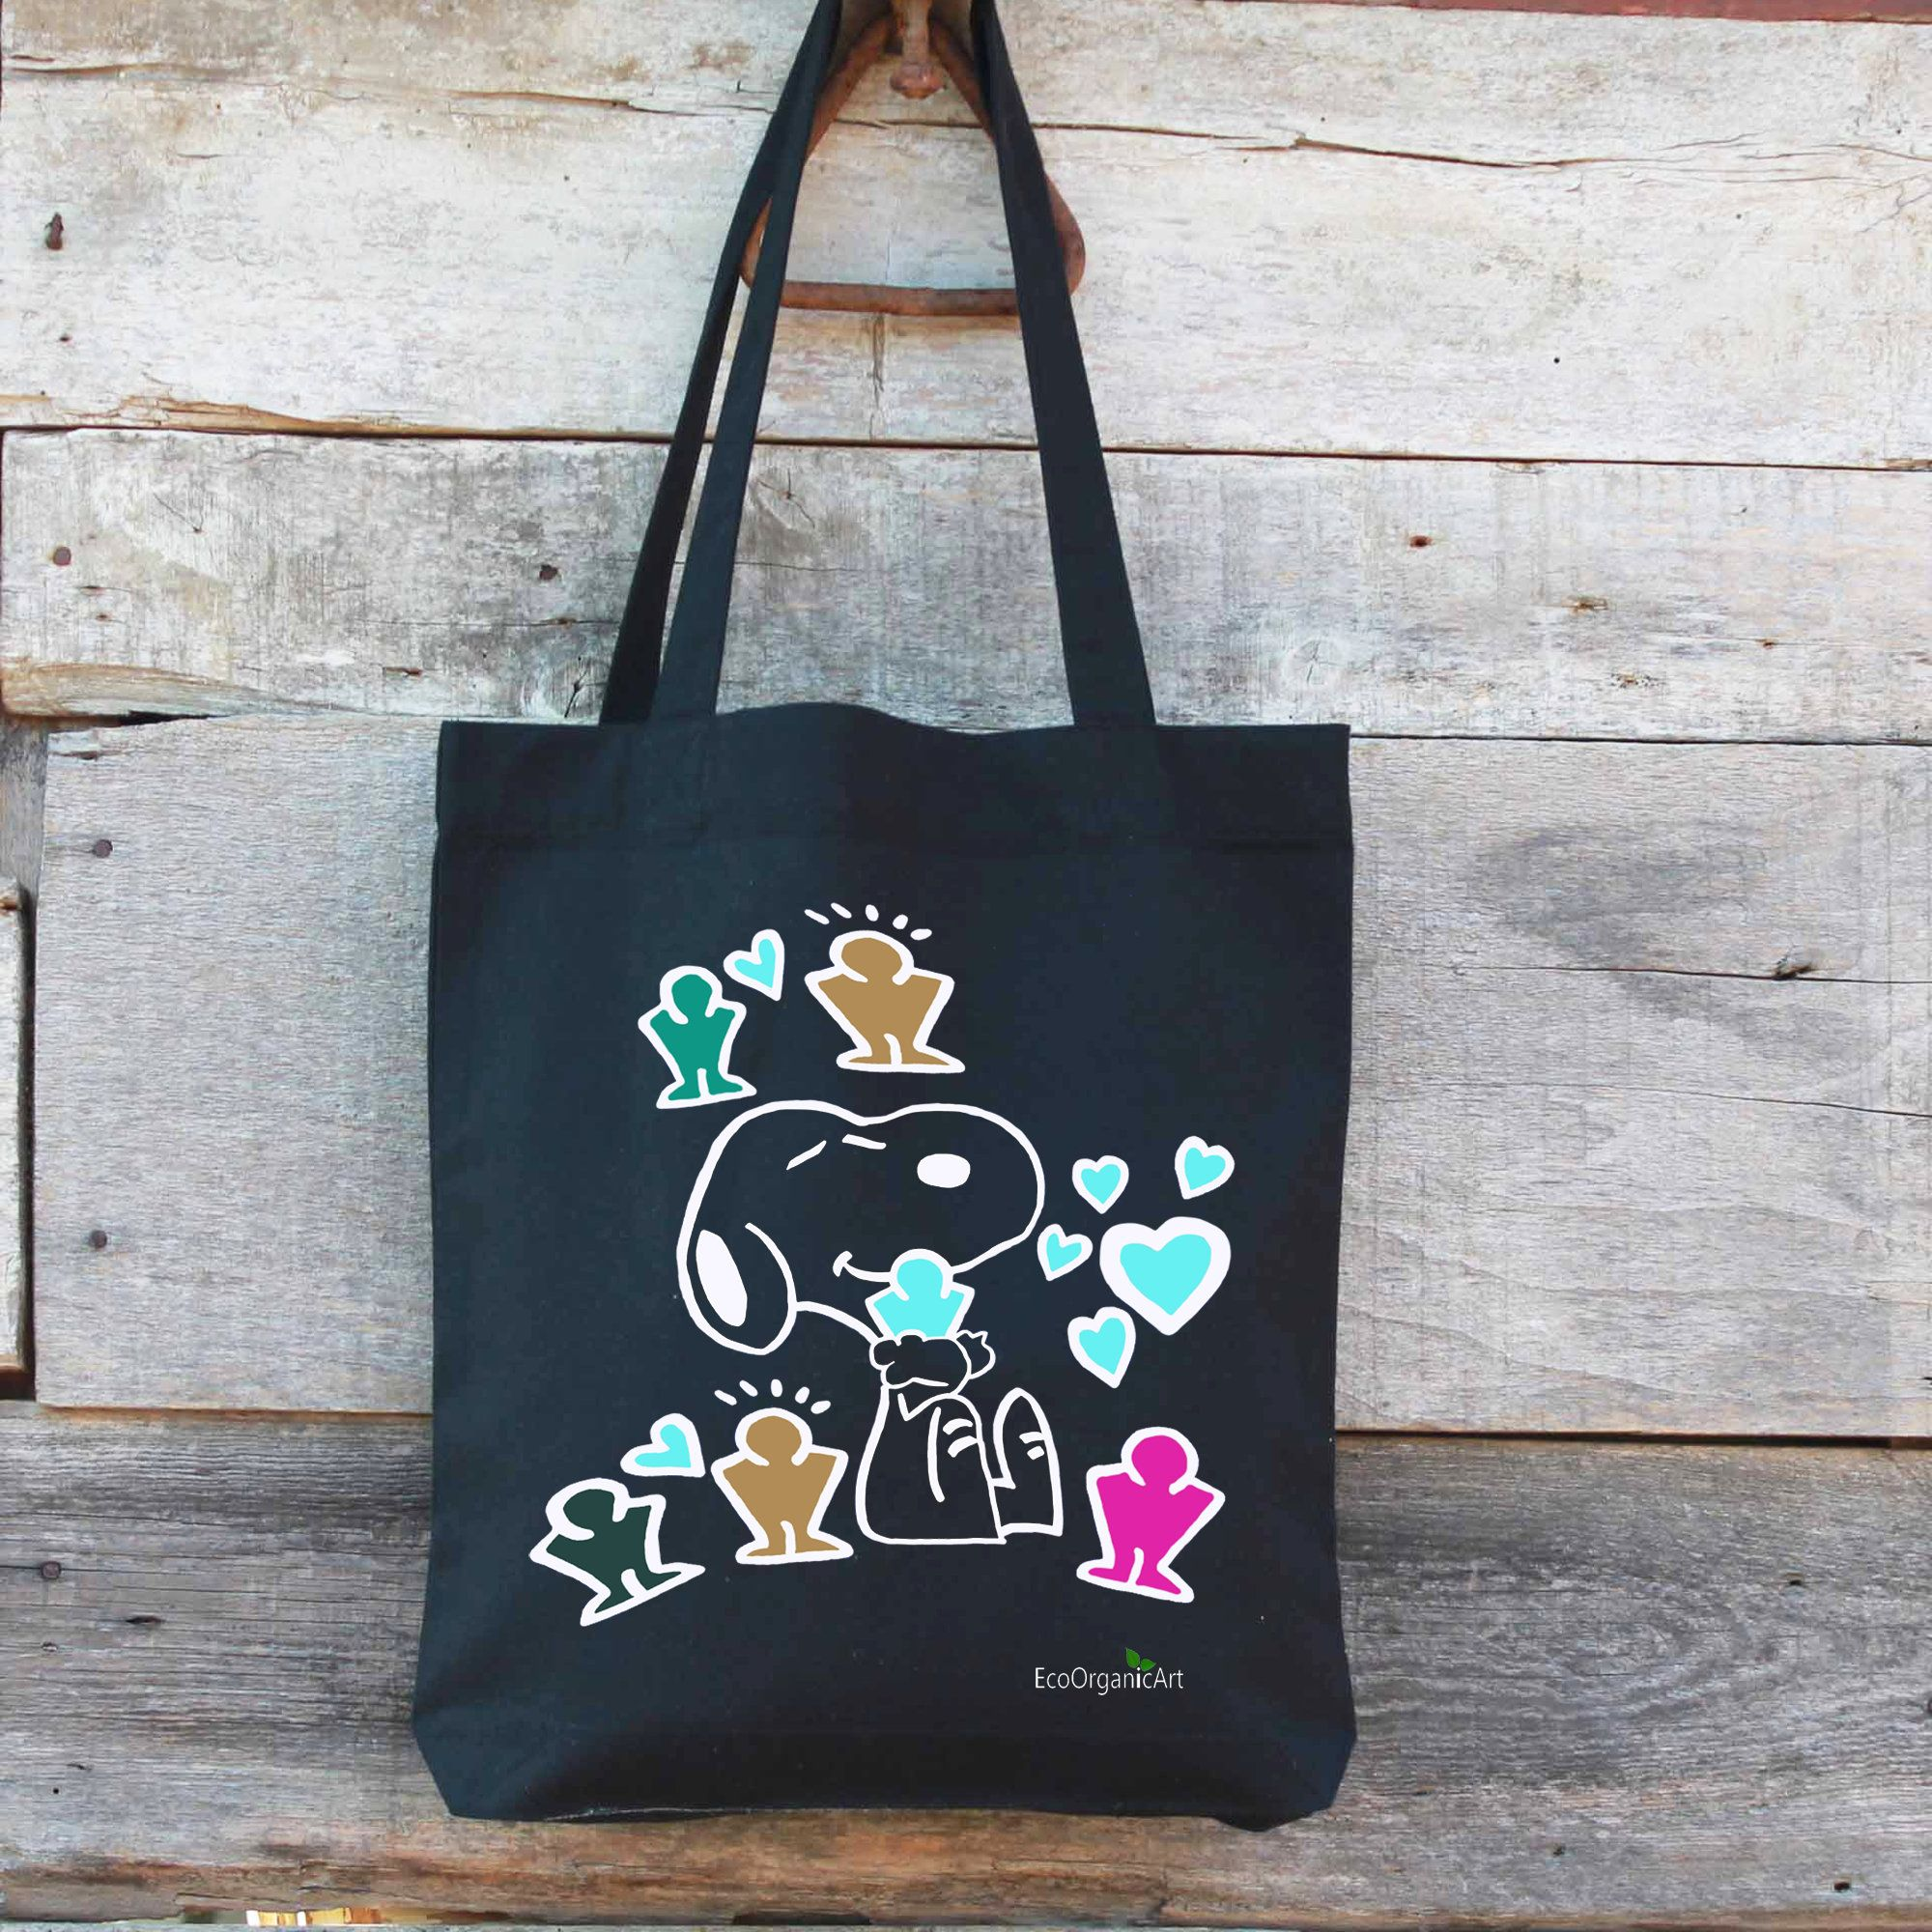 Snoopy in Keith Haring style,Tote bag,Eco friendly in 2020